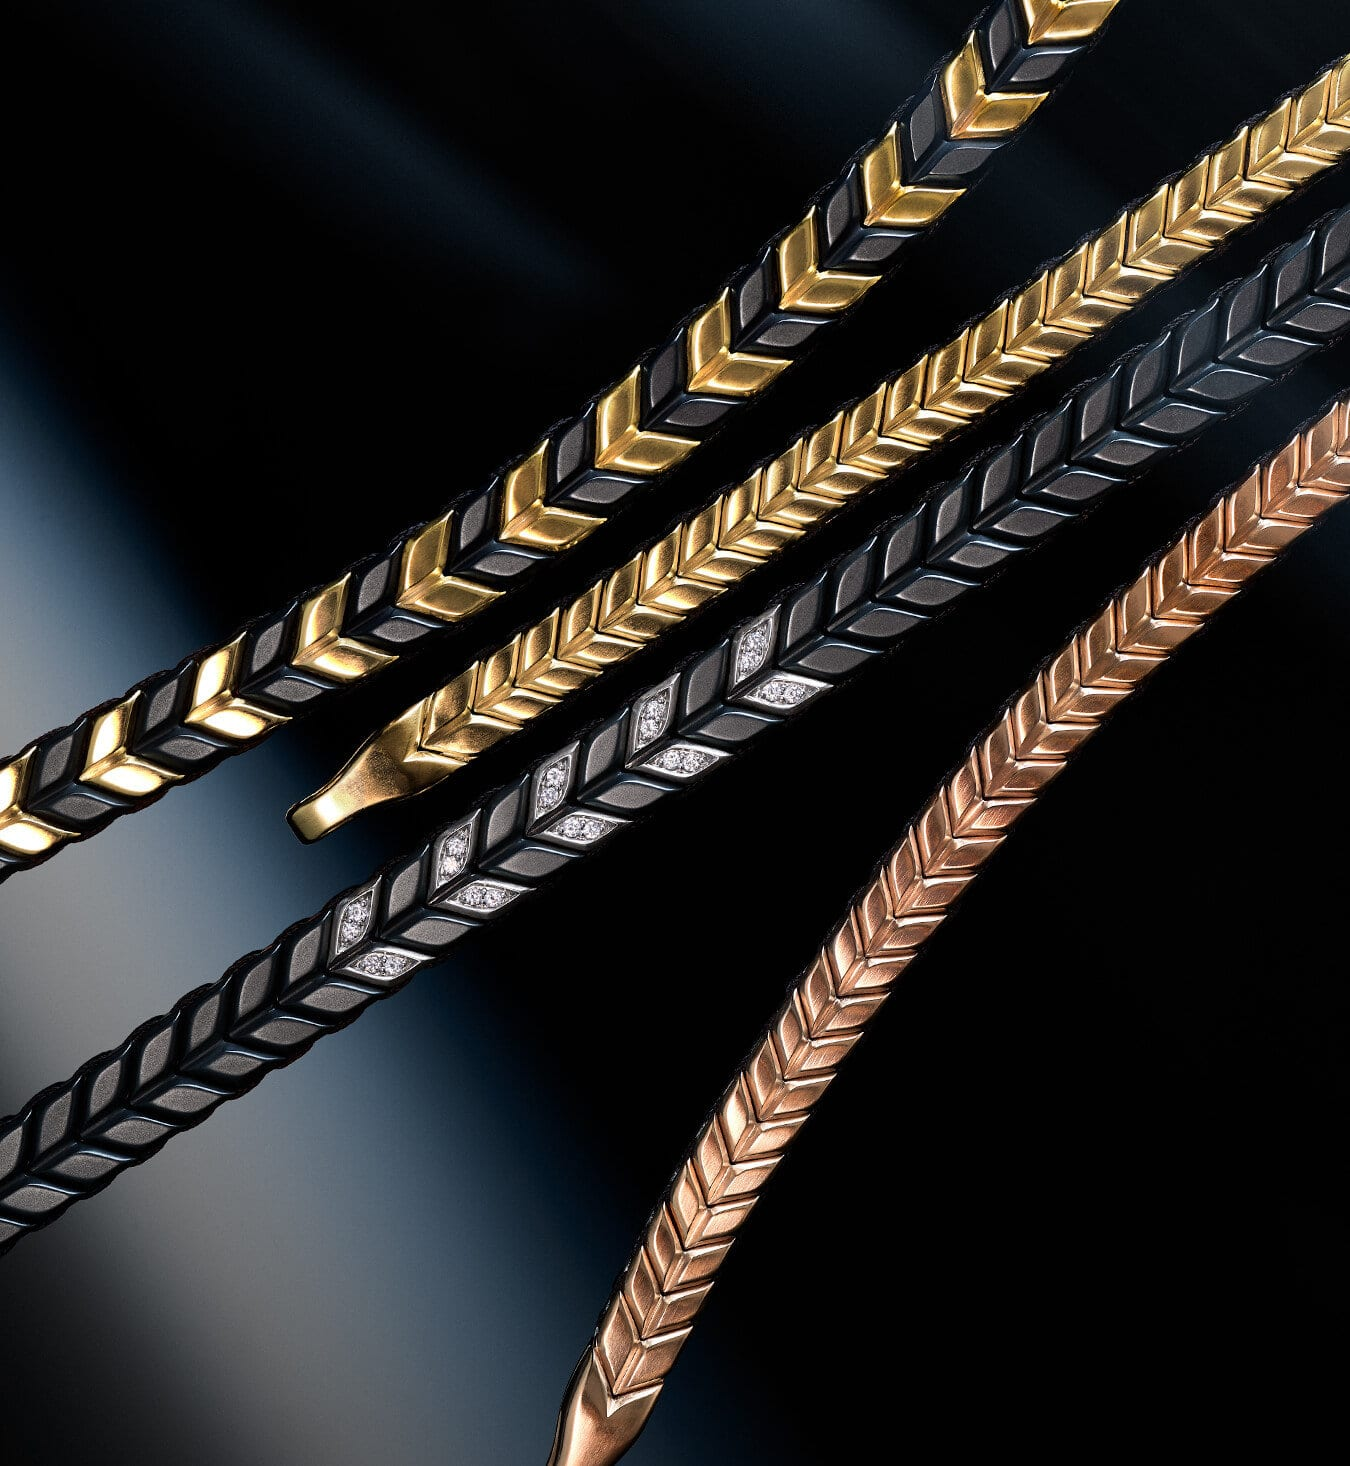 A diagonal stack of David Yurman men's Chevron bracelets, in 18K yellow gold with black titanium, 18K yellow gold, black titanium with sterling silver and diamonds or 18K rose gold, against a dark background with streaks of grey, orange and red.